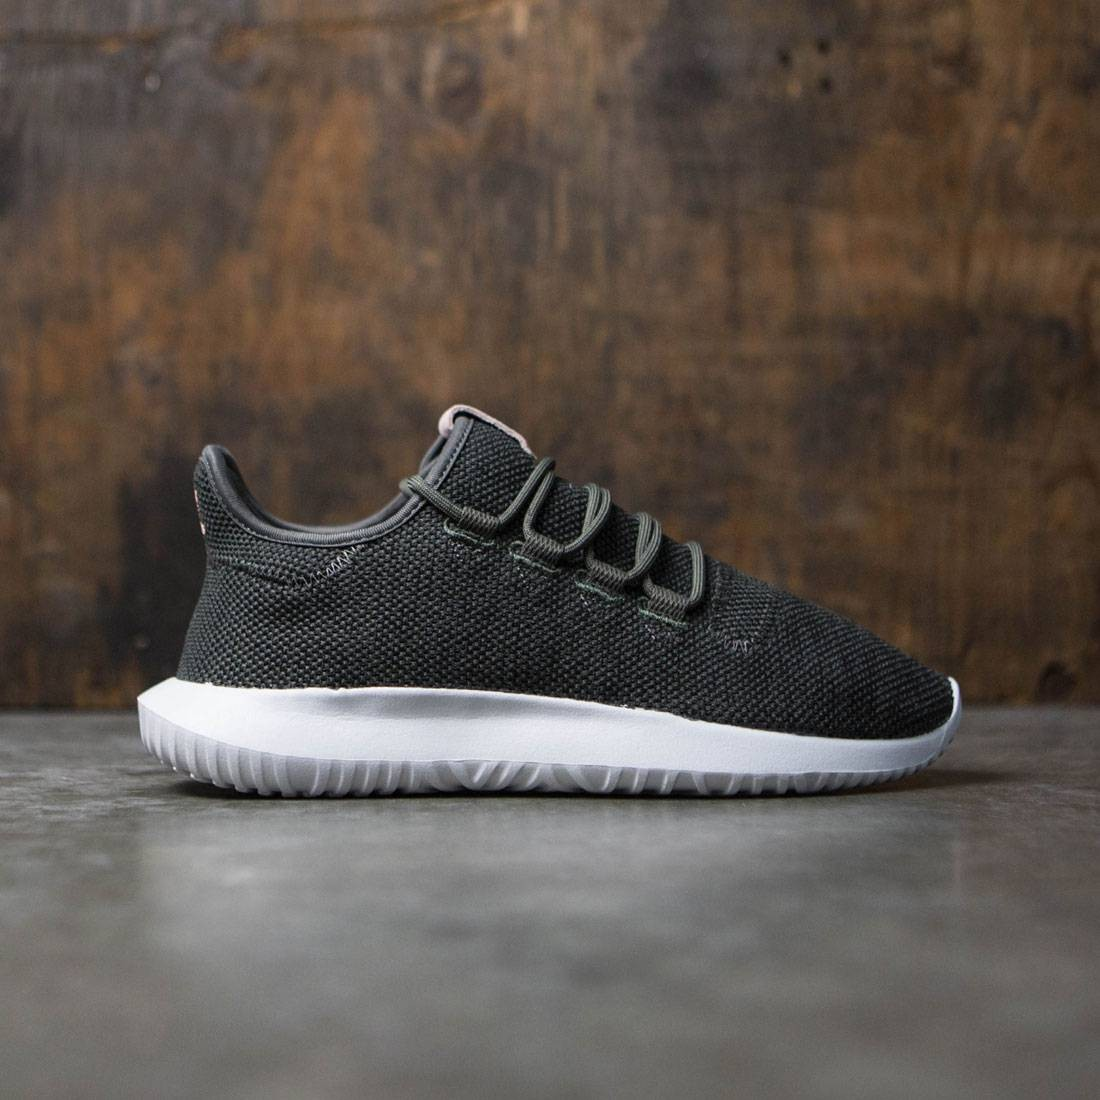 Adidas Women Tubular Shadow gray black ftwwht 5d0e6dcb178b